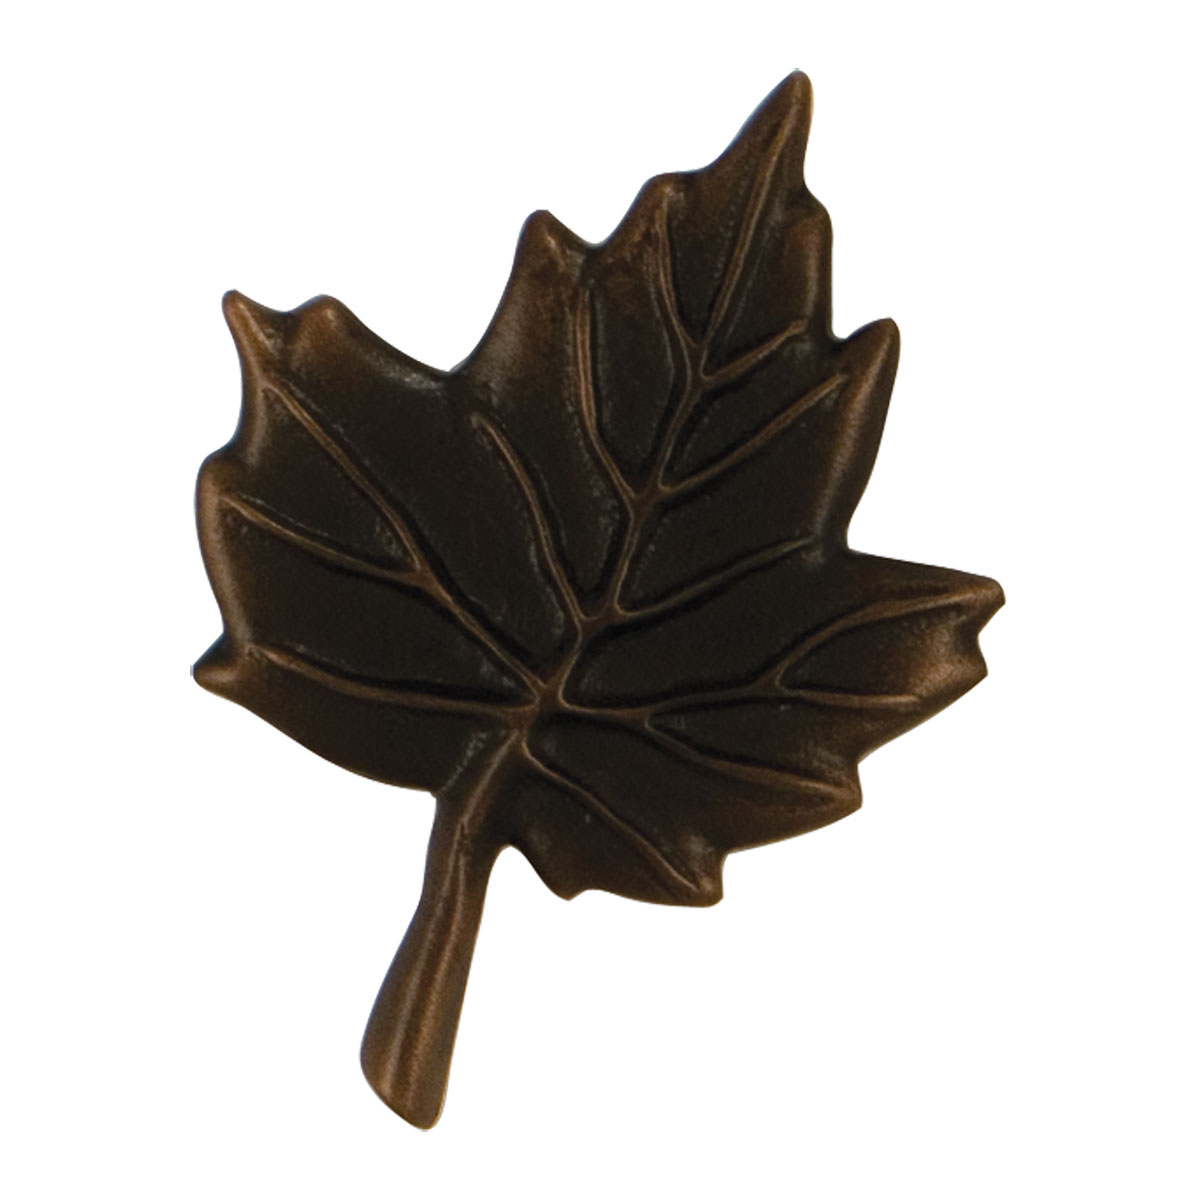 "2 3/4""W x 3 1/2""H Michael Healy Maple Leaf Doorbell Ringer, Oiled Bronze"